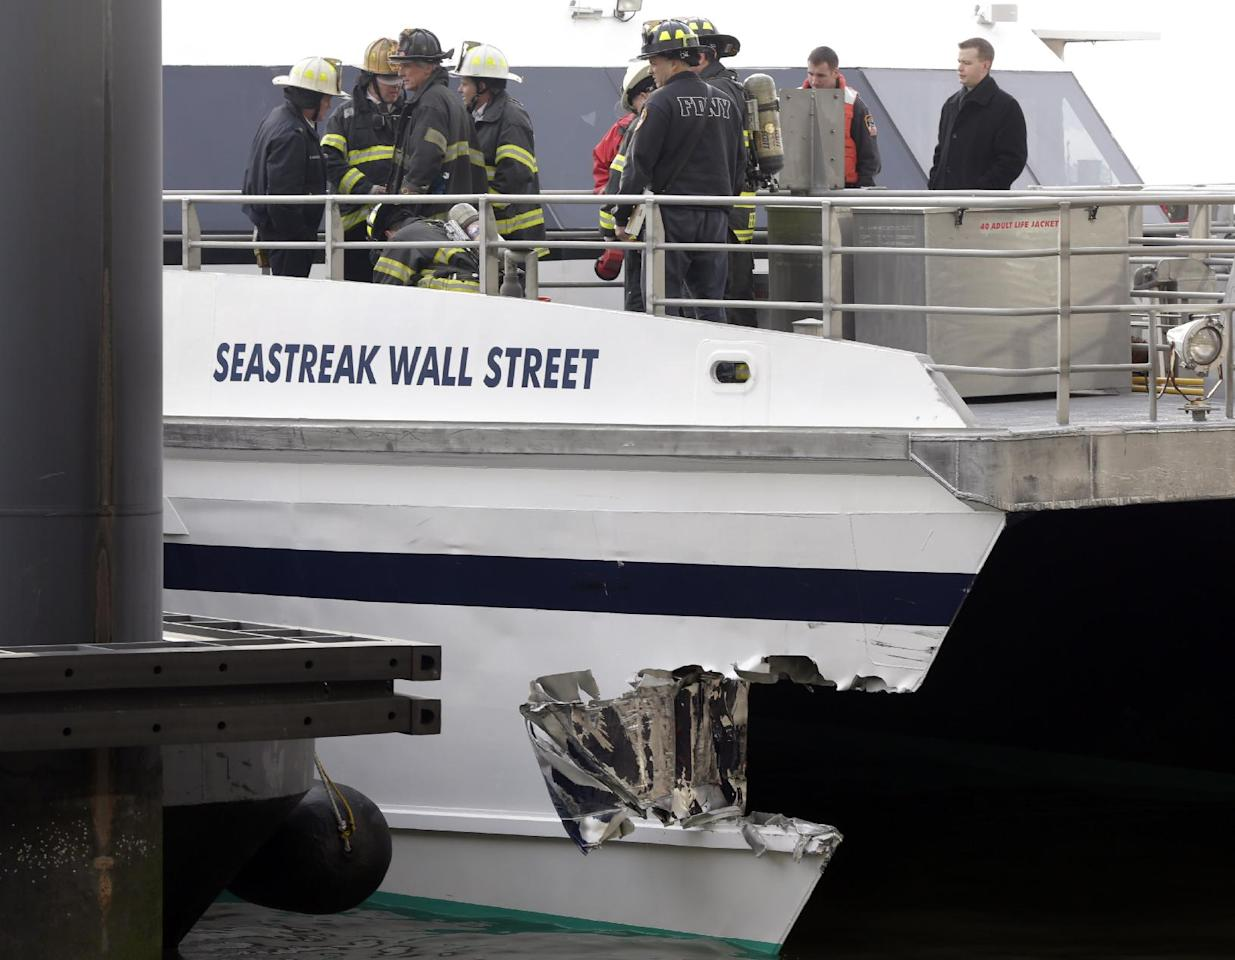 New York City firefighters walk the deck of the Seastreak Wall Street ferry in New York, Wednesday, Jan. 9, 2013. The ferry from Atlantic Highlands, N.J., banged into the mooring as it arrived at South Street in lower Manhattan during morning rush hour, injuring as many as 50 people, at least one critically, officials said.(AP Photo/Richard Drew)